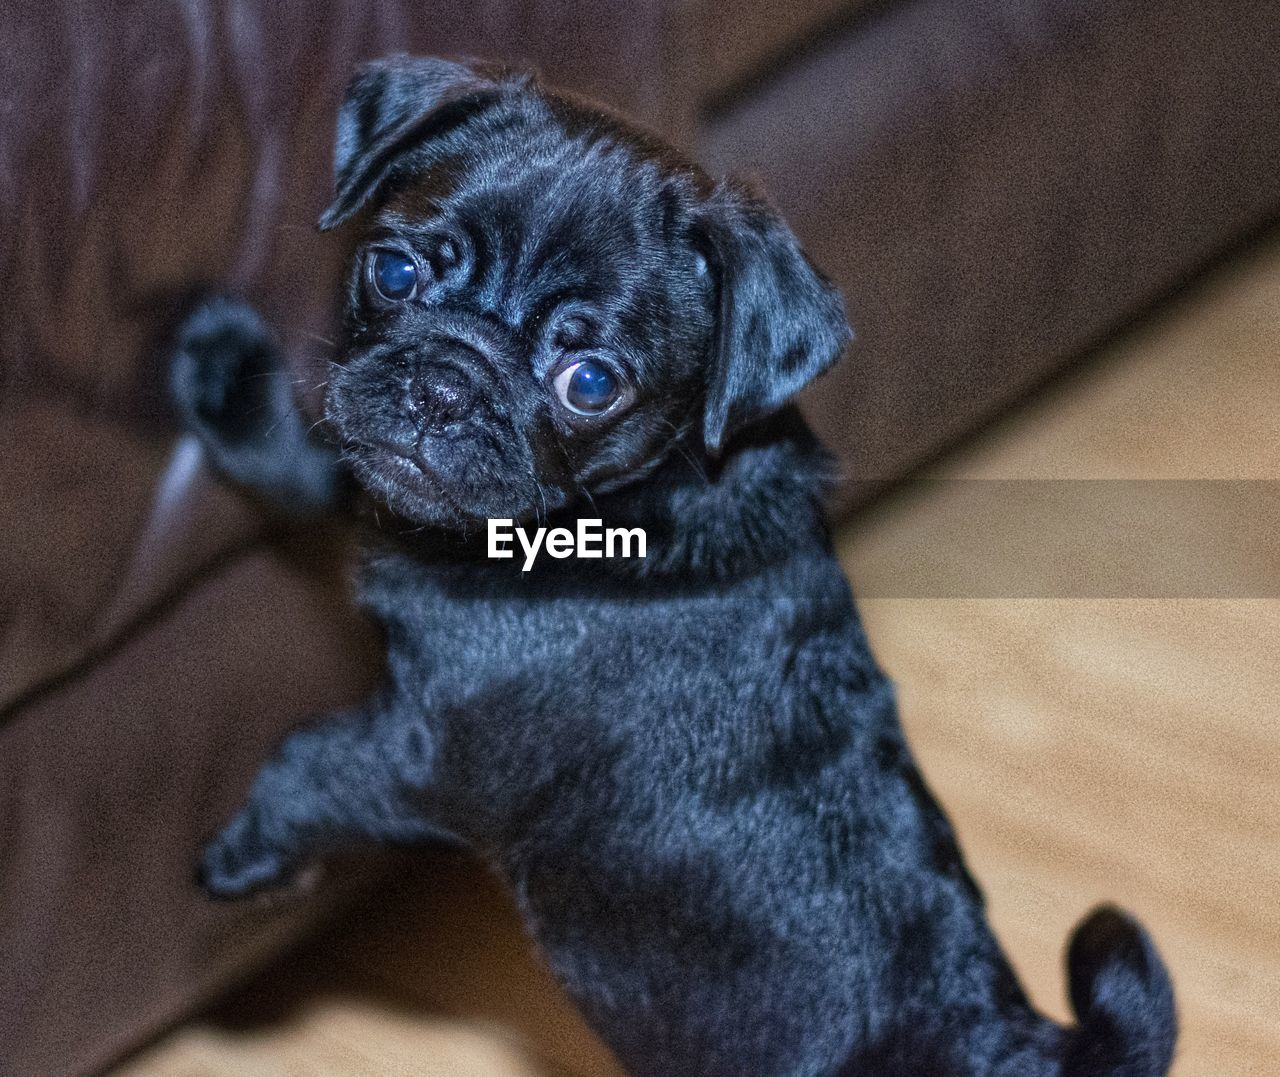 dog, pets, one animal, domestic animals, animal themes, mammal, indoors, puppy, pug, no people, looking at camera, portrait, sitting, day, close-up